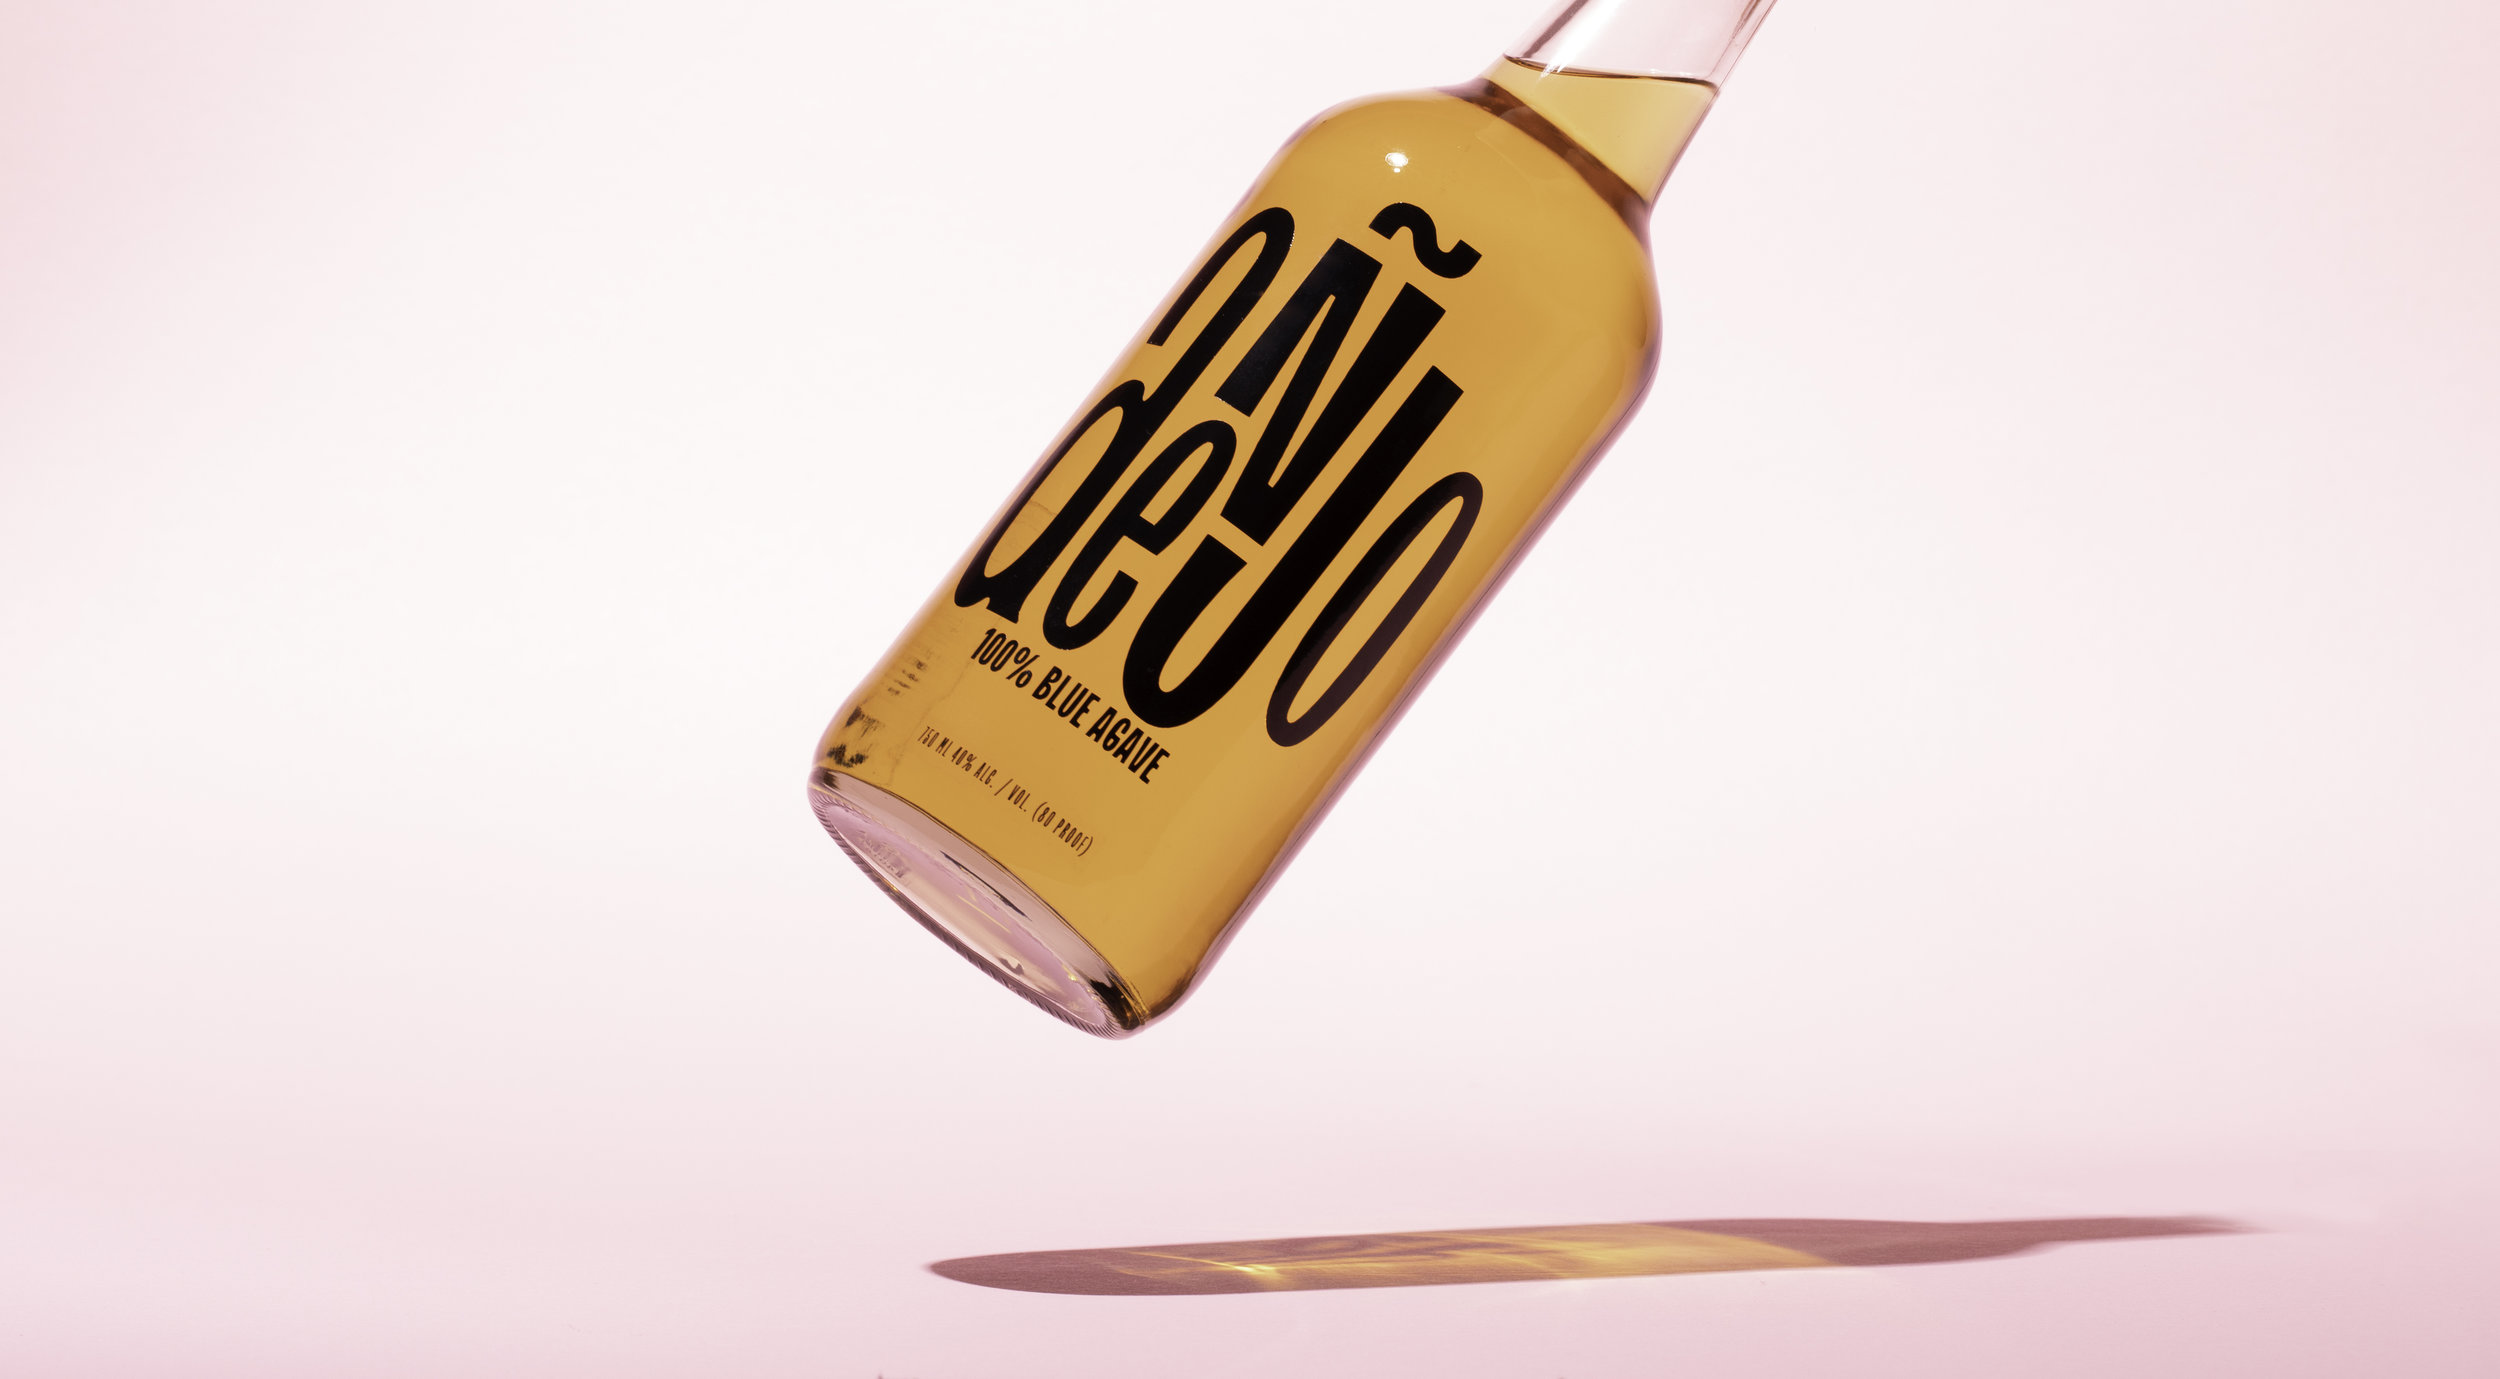 Anejo Tequila Bottle Floating in Air above pink Background